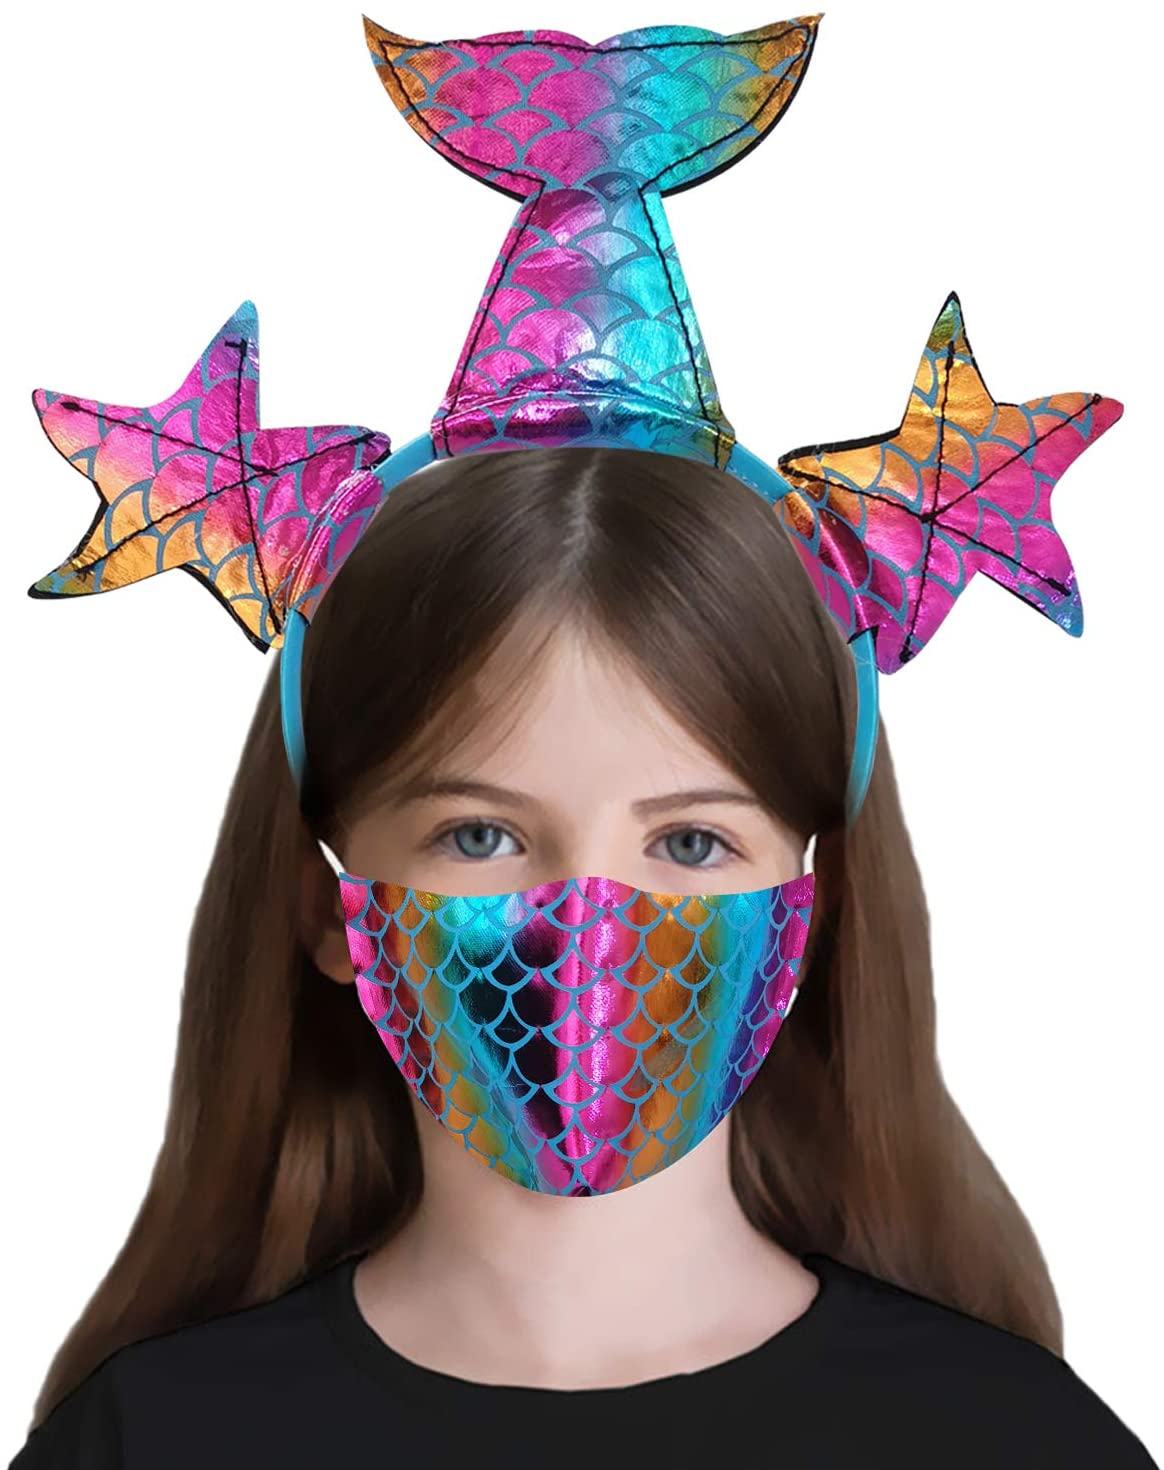 Studio 21 Graphix Breathable Kids Cloth Face Covering with Headbands, Cute Children Washable Glitter Mouth Cover Halloween Masquerade Accessories